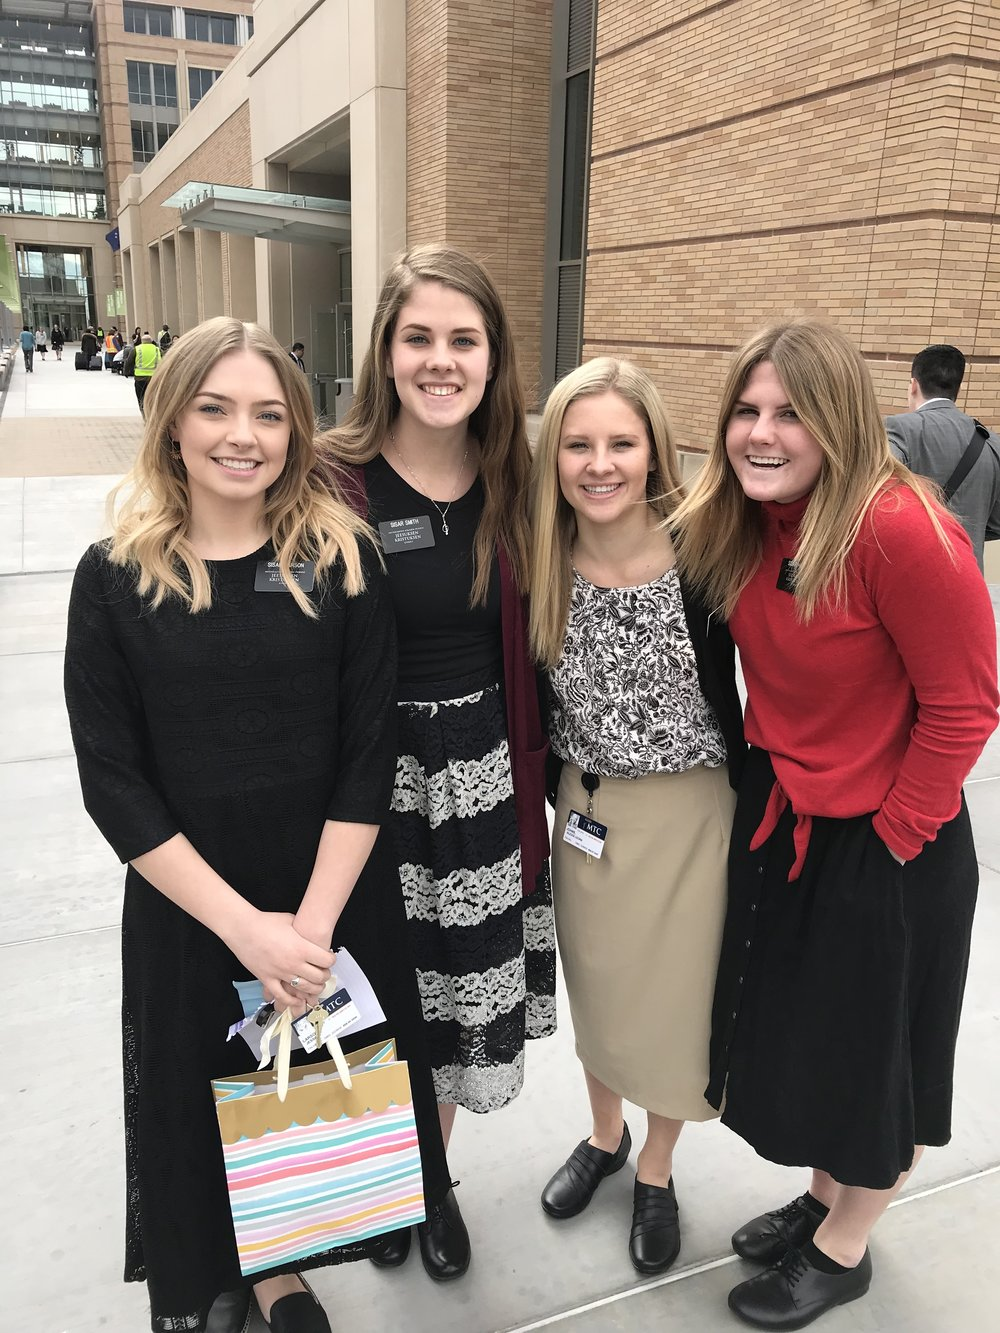 The Finnish Sisars in the Provo MTC.